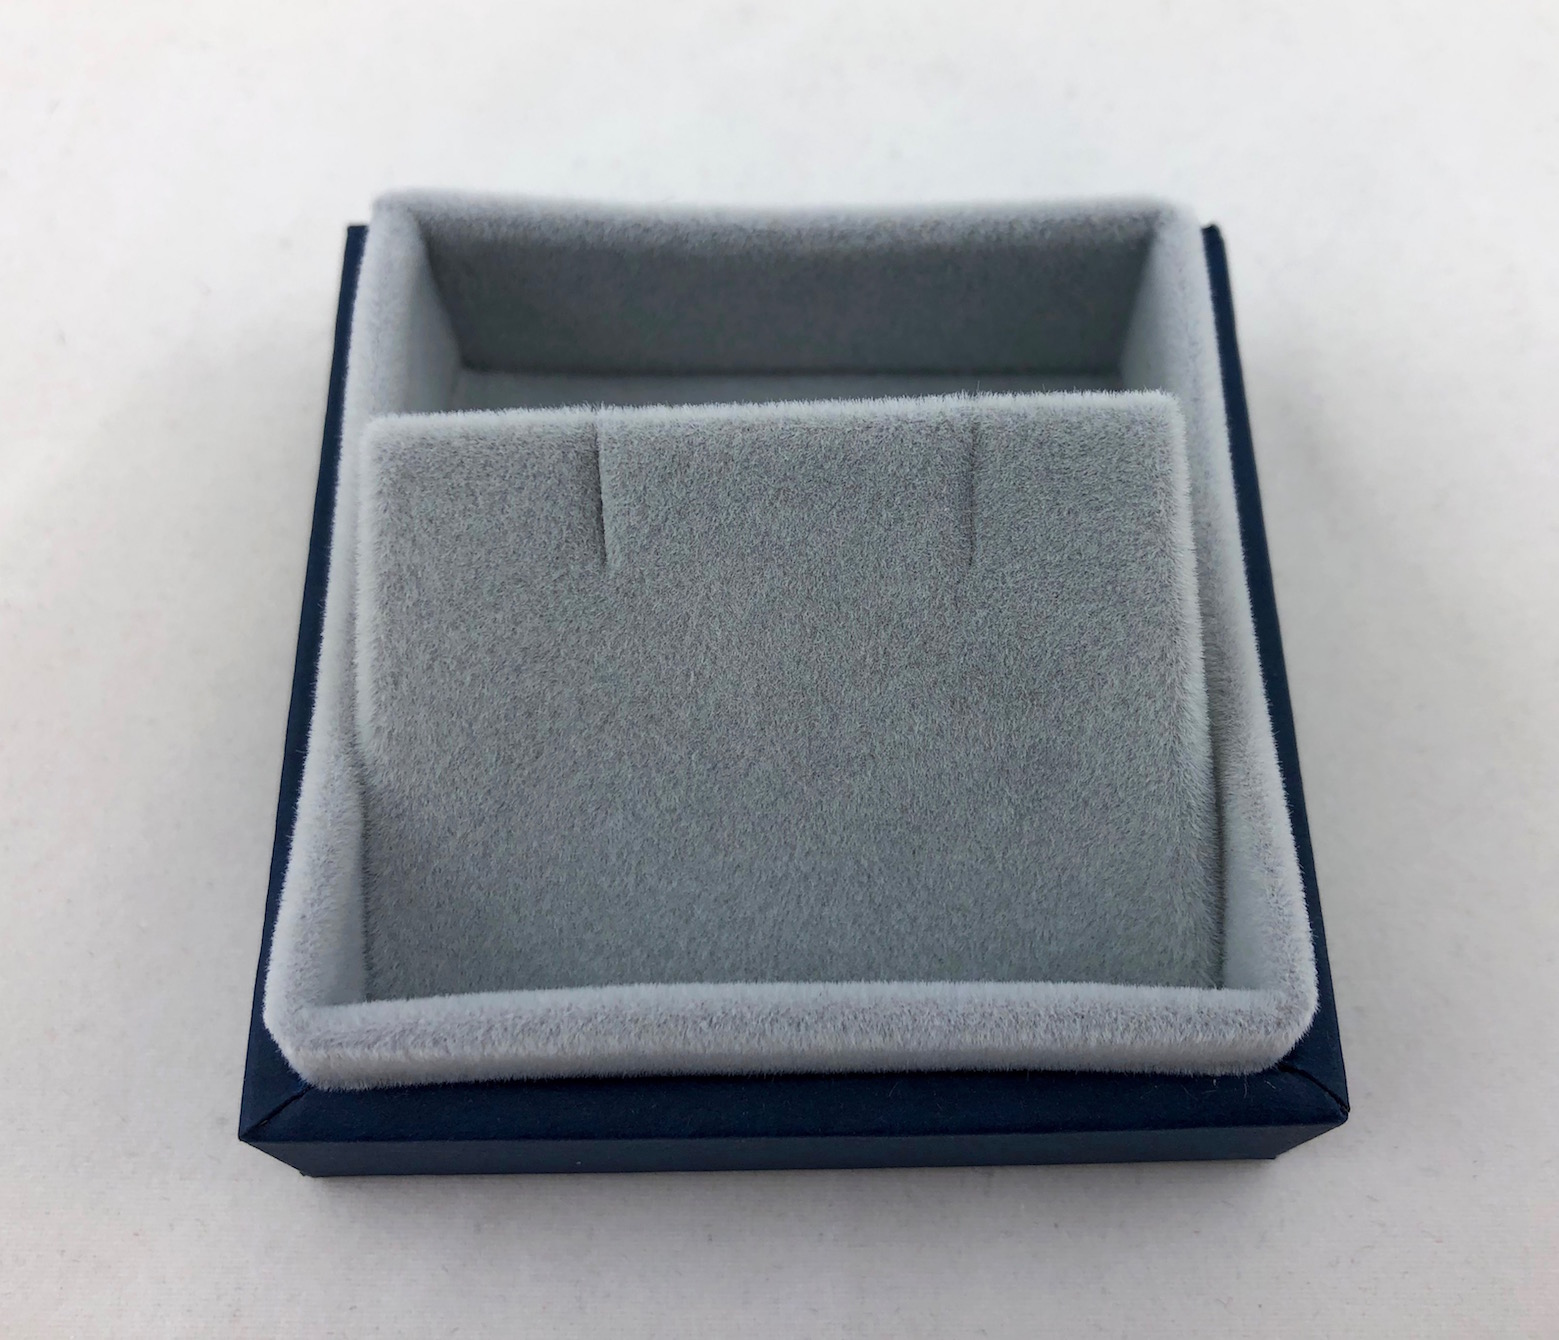 New Blue Envy Earring Box